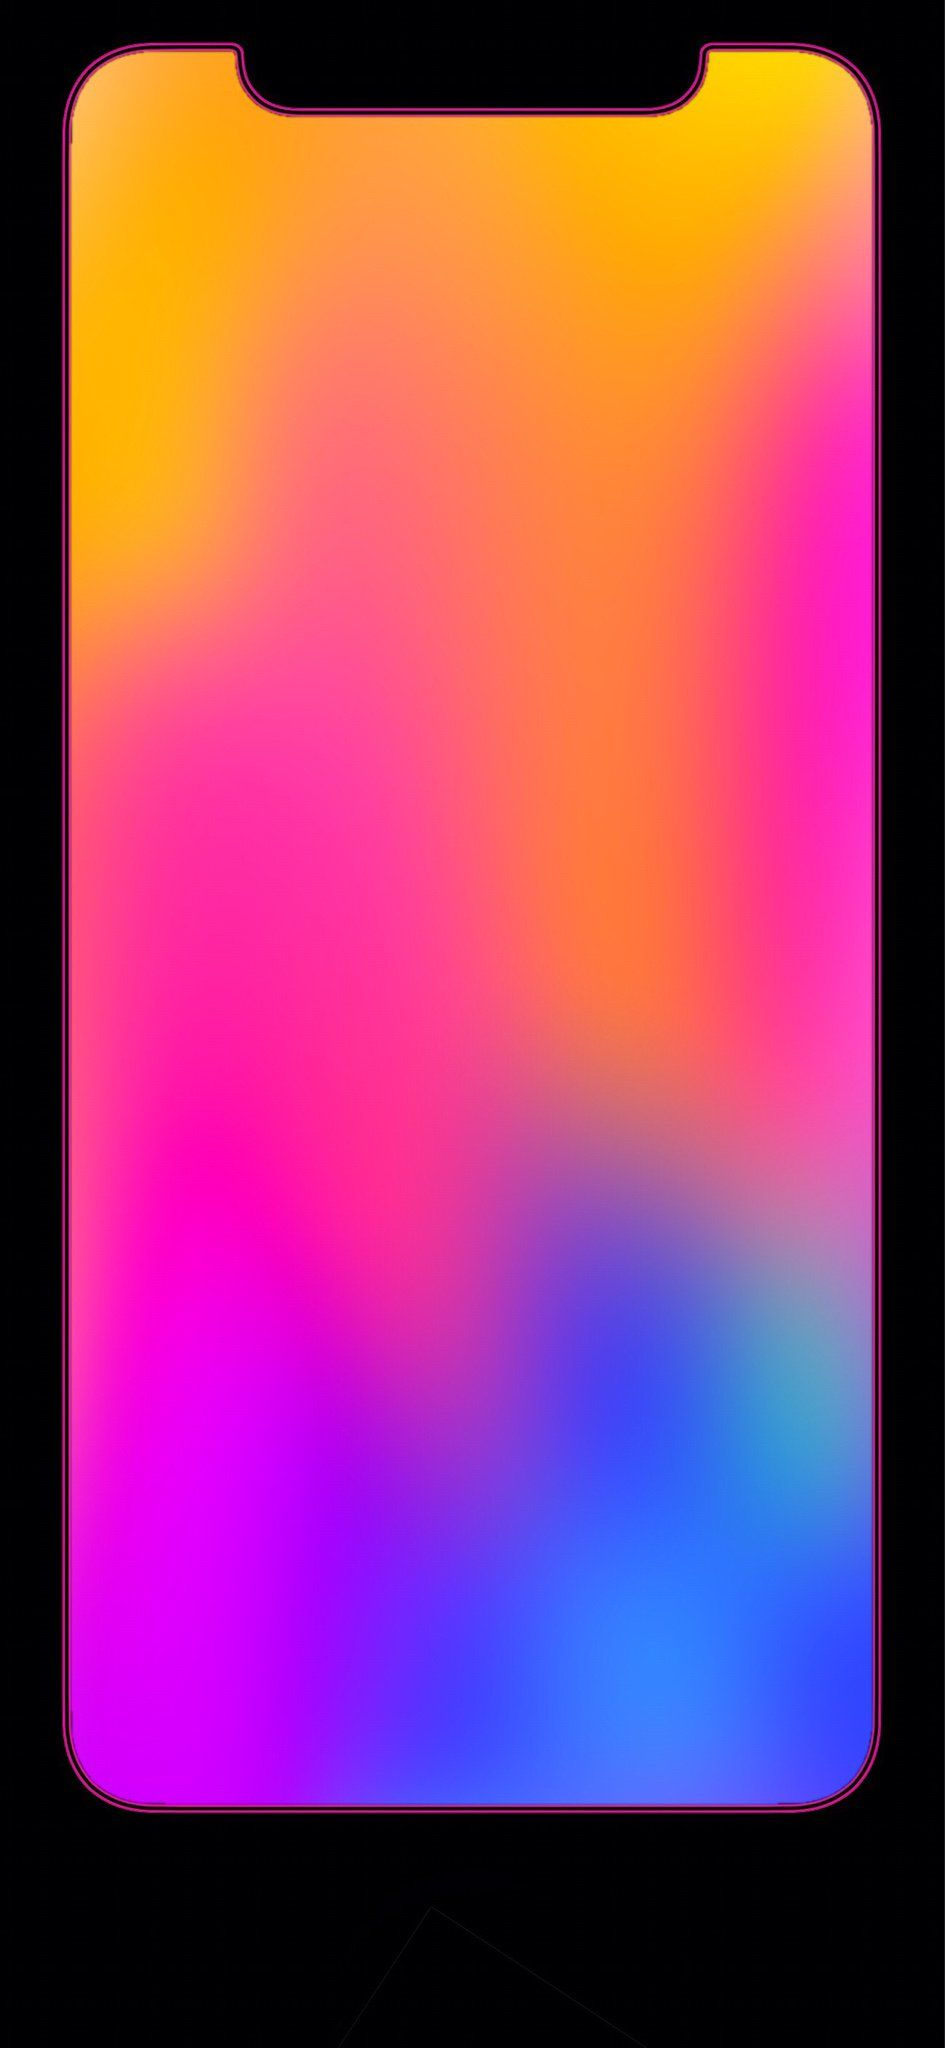 Iphone X Red Border Wallpaper